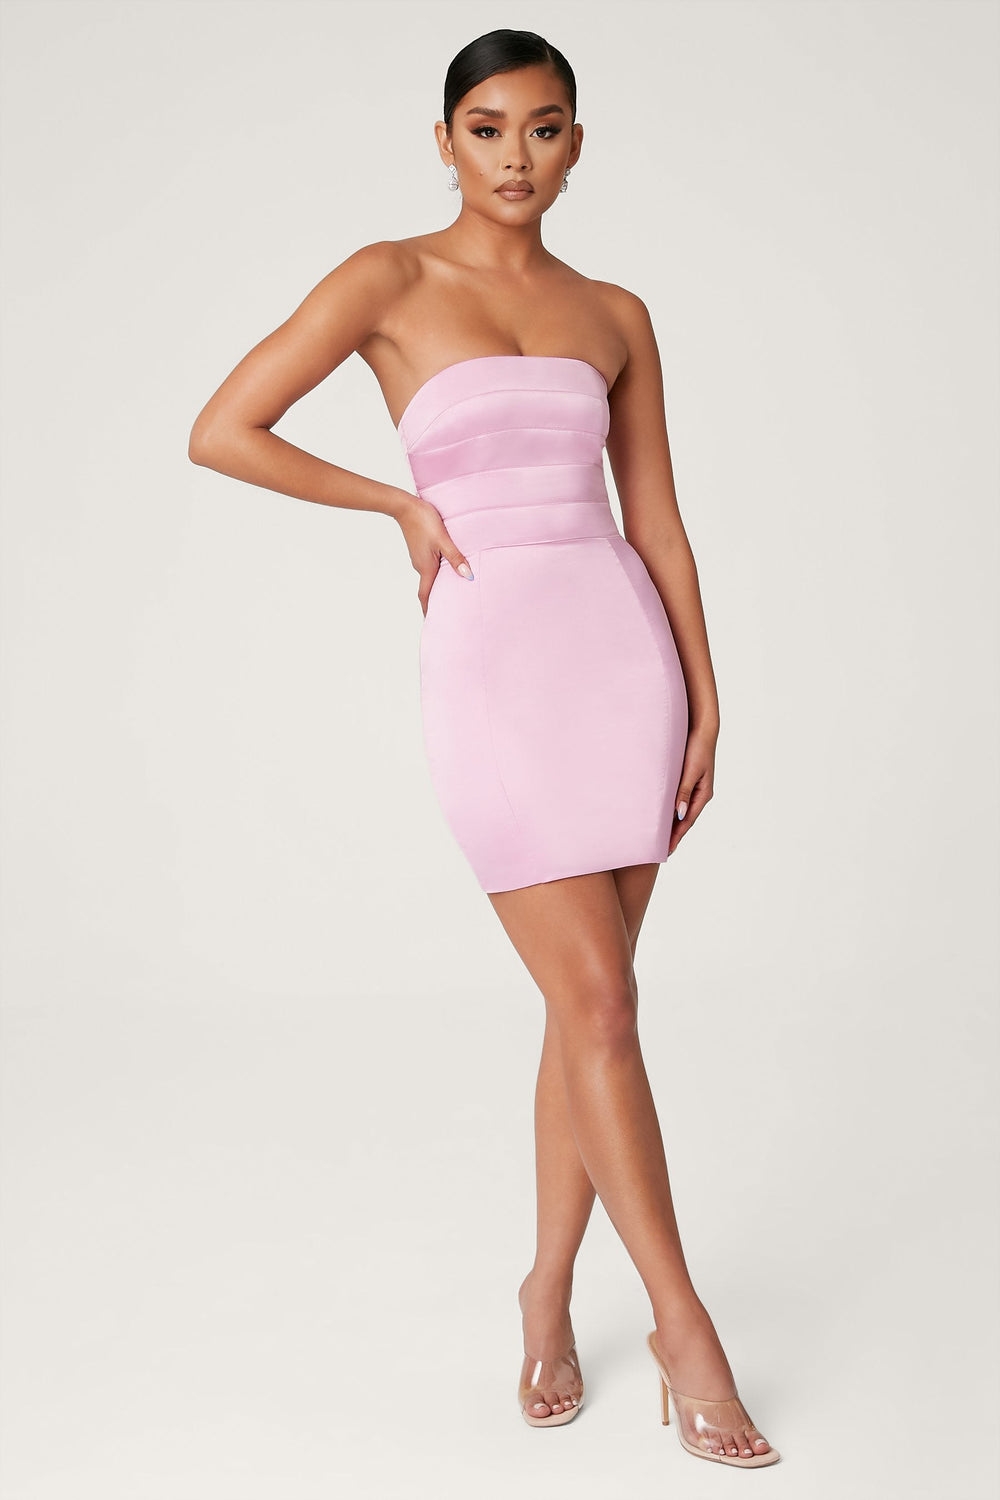 Alline Strapless Satin Mini Dress - Pink - MESHKI ?id=13873079287883